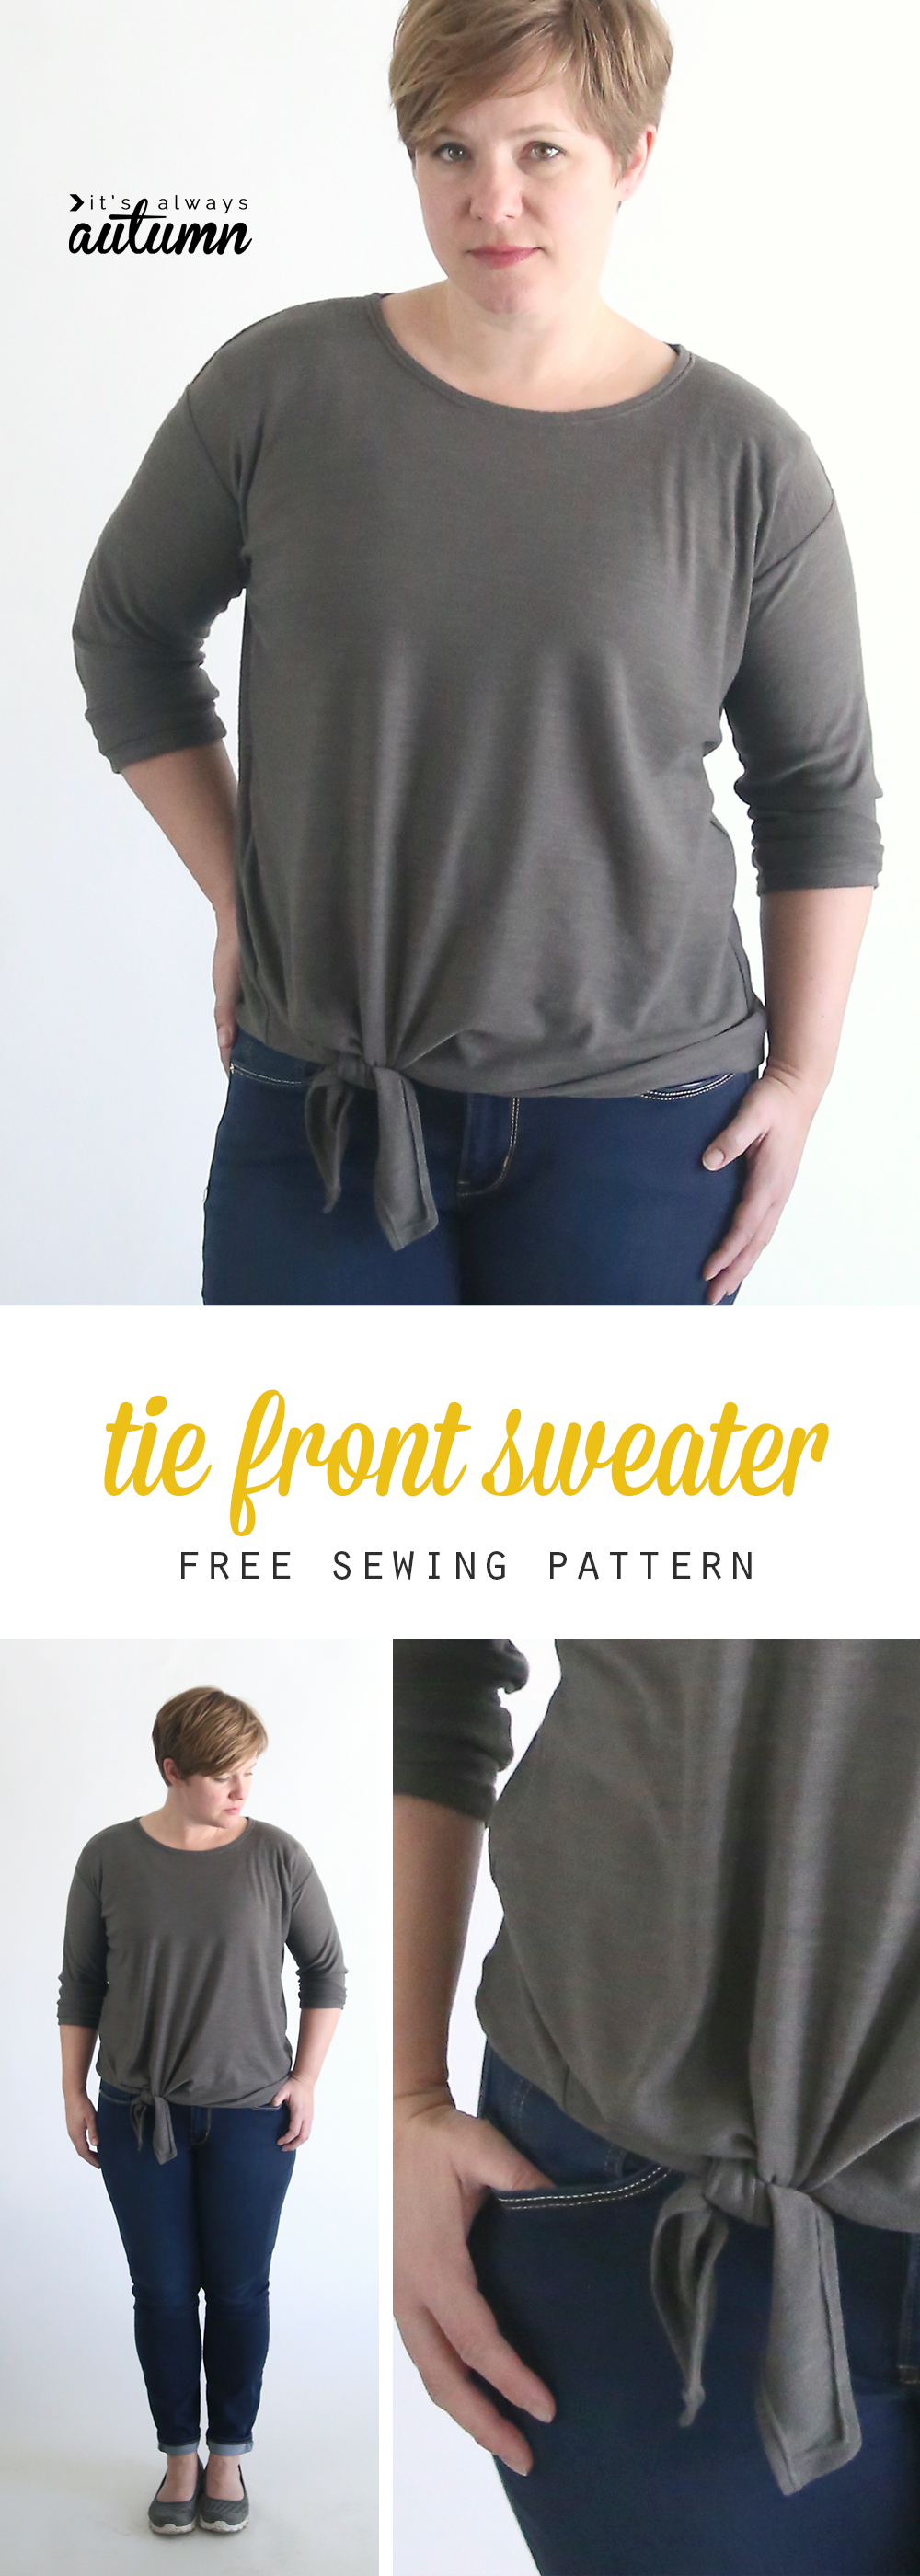 Click through for the free sewing pattern for this tie front slouchy sweater. Women's size L.